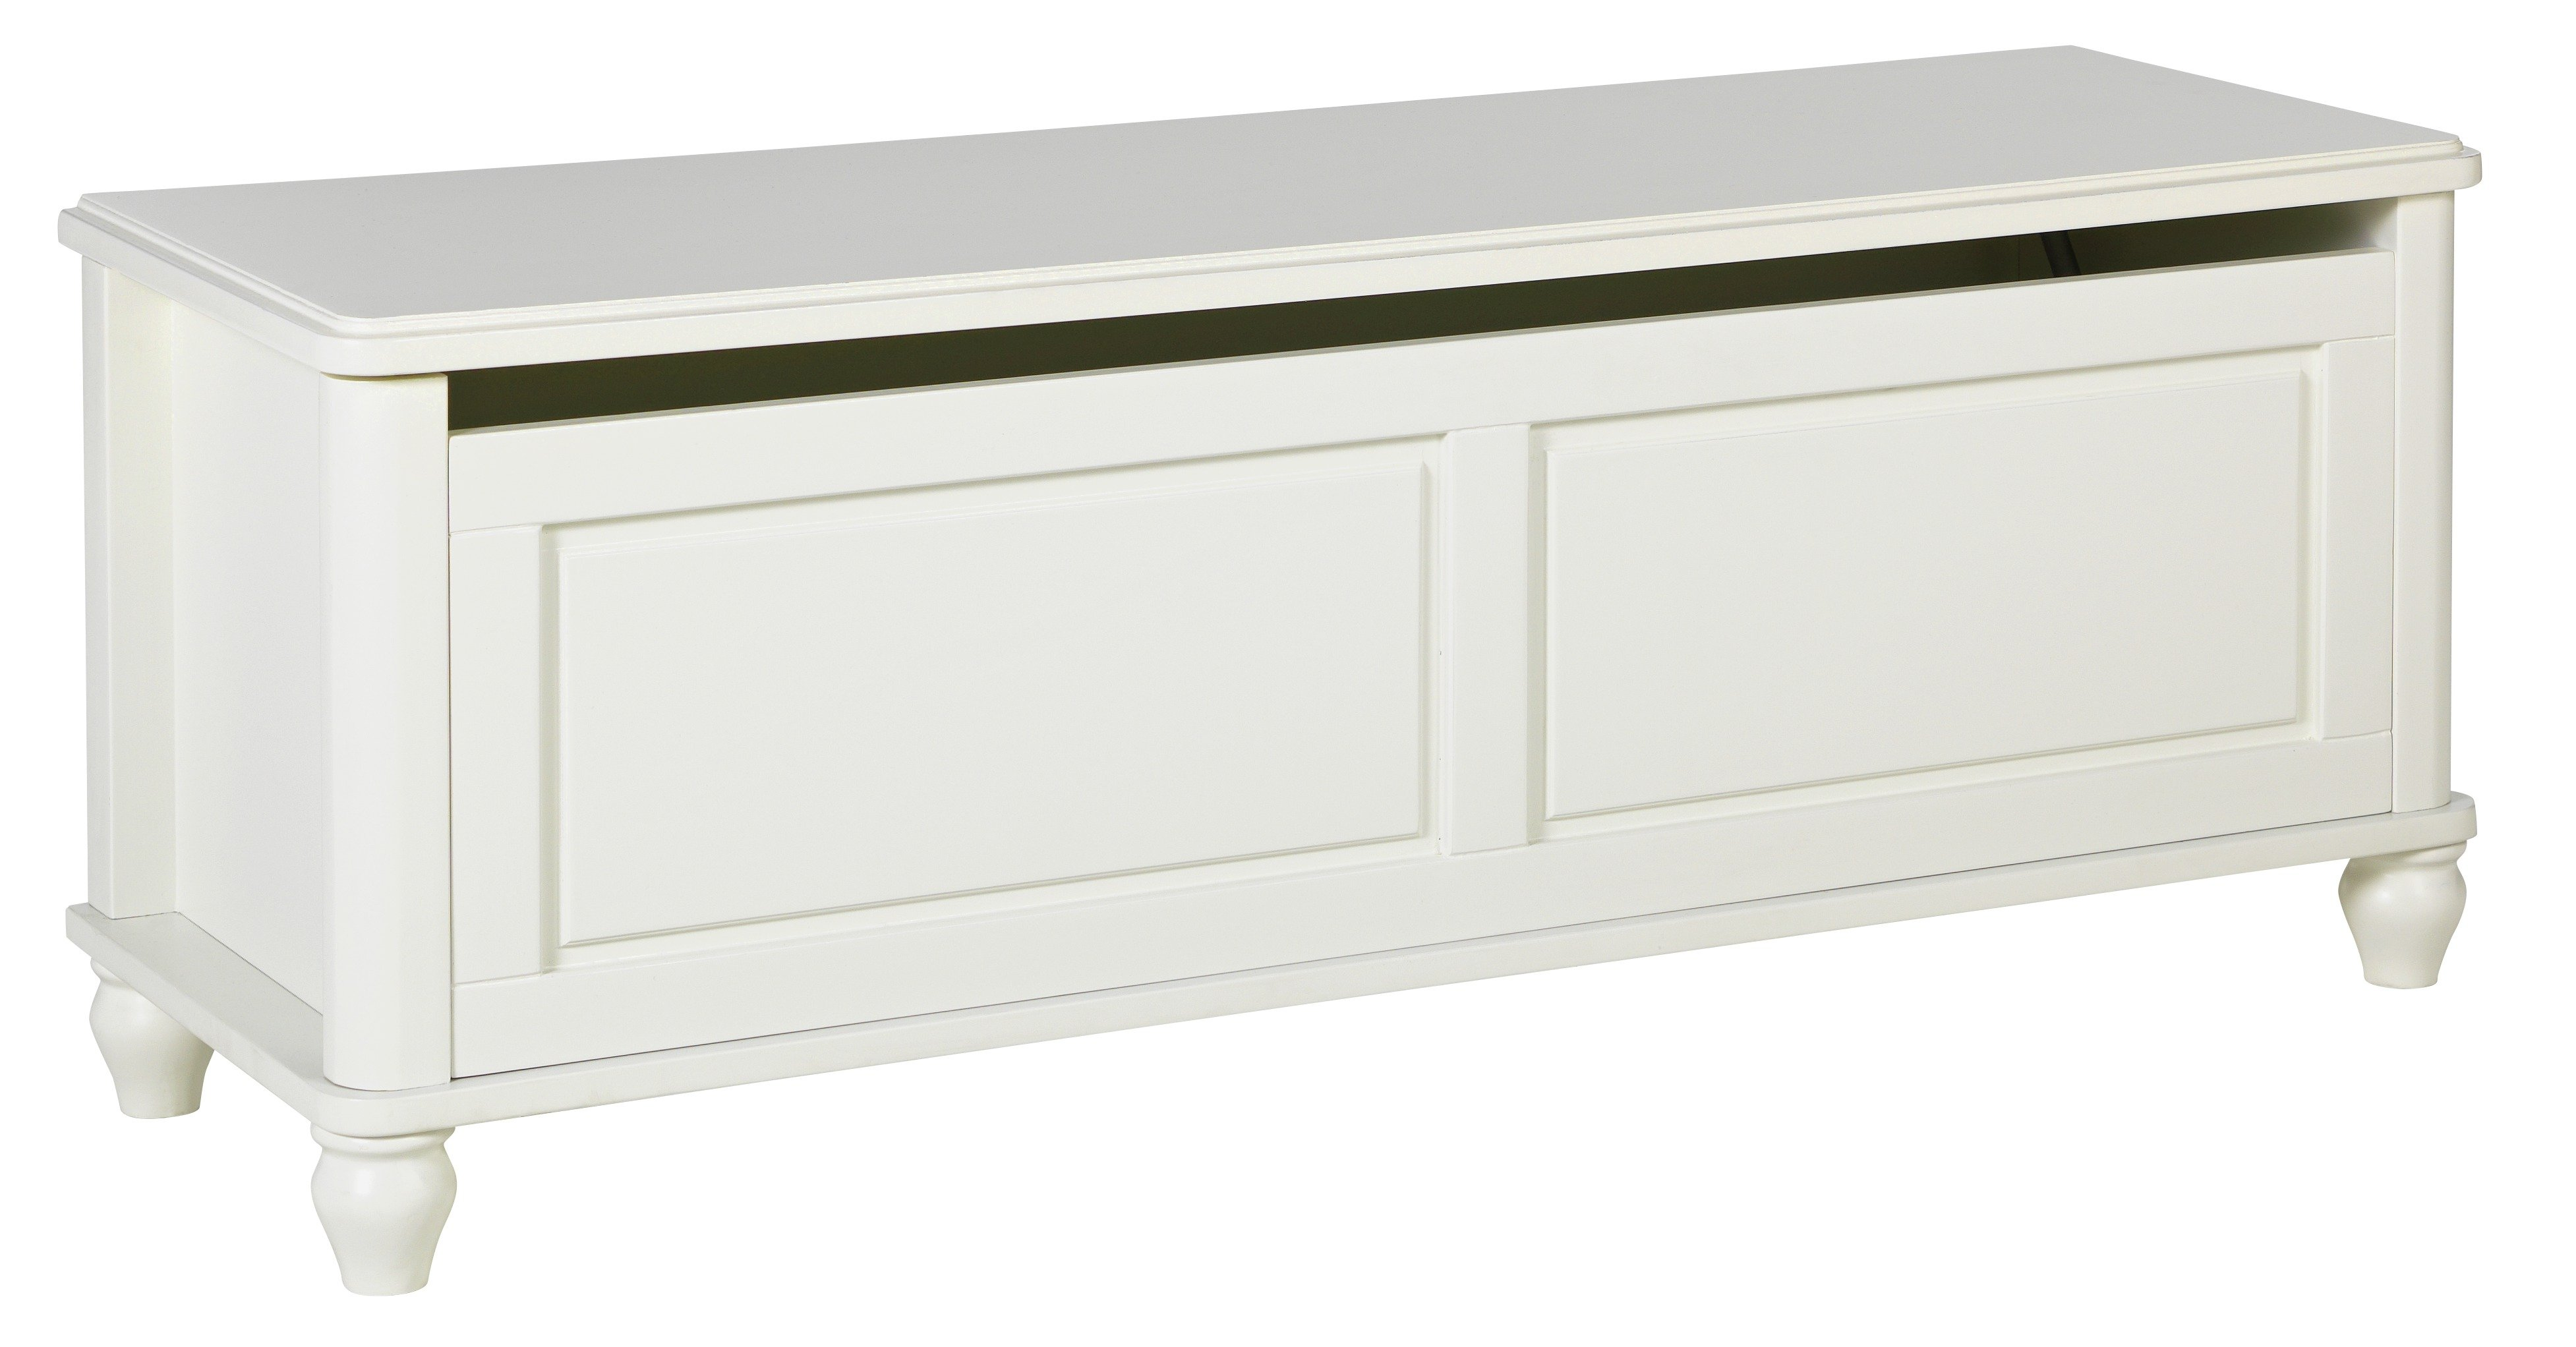 Argos Home Ashbourne Blanket Box - Ivory